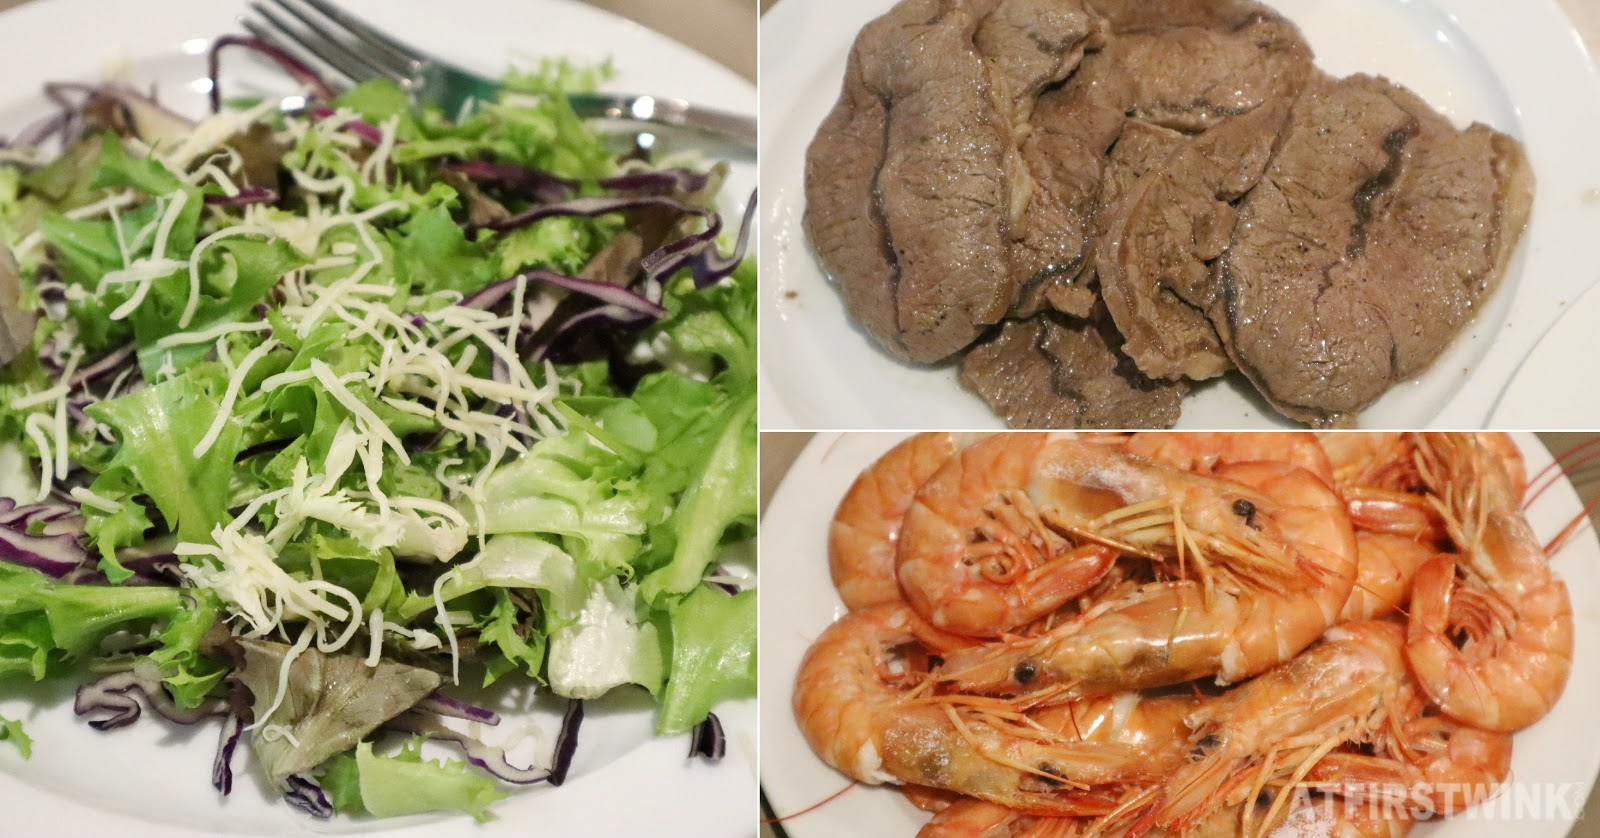 Barcelona shrimp beef salad cheese homemade dinner